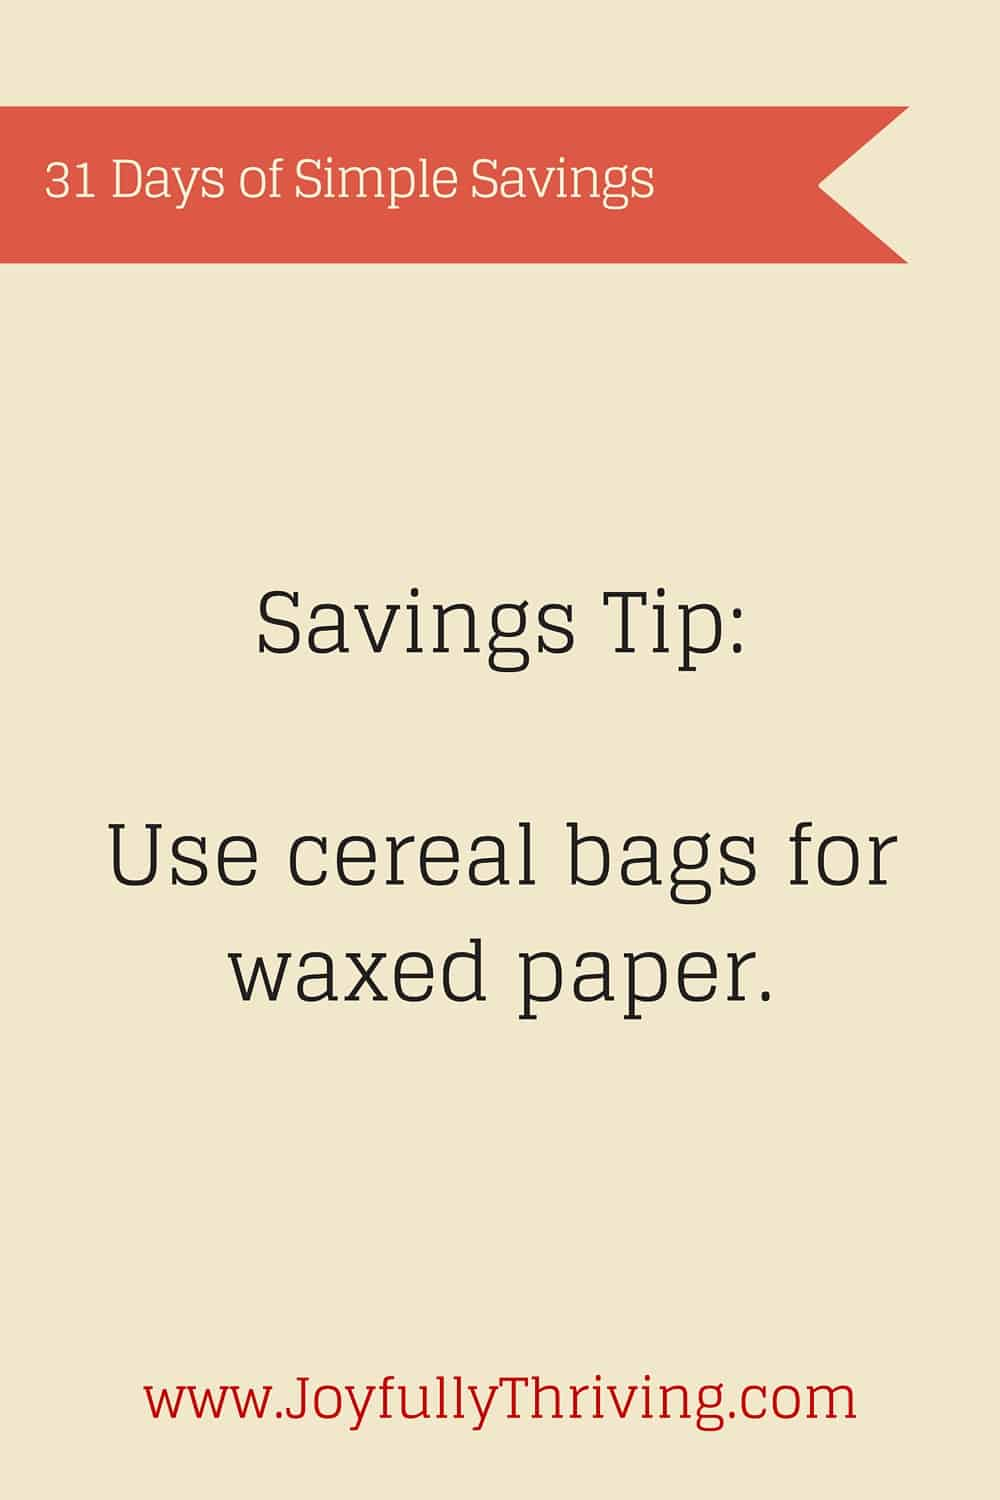 Simple Savings: Use cereal bags for waxed paper.